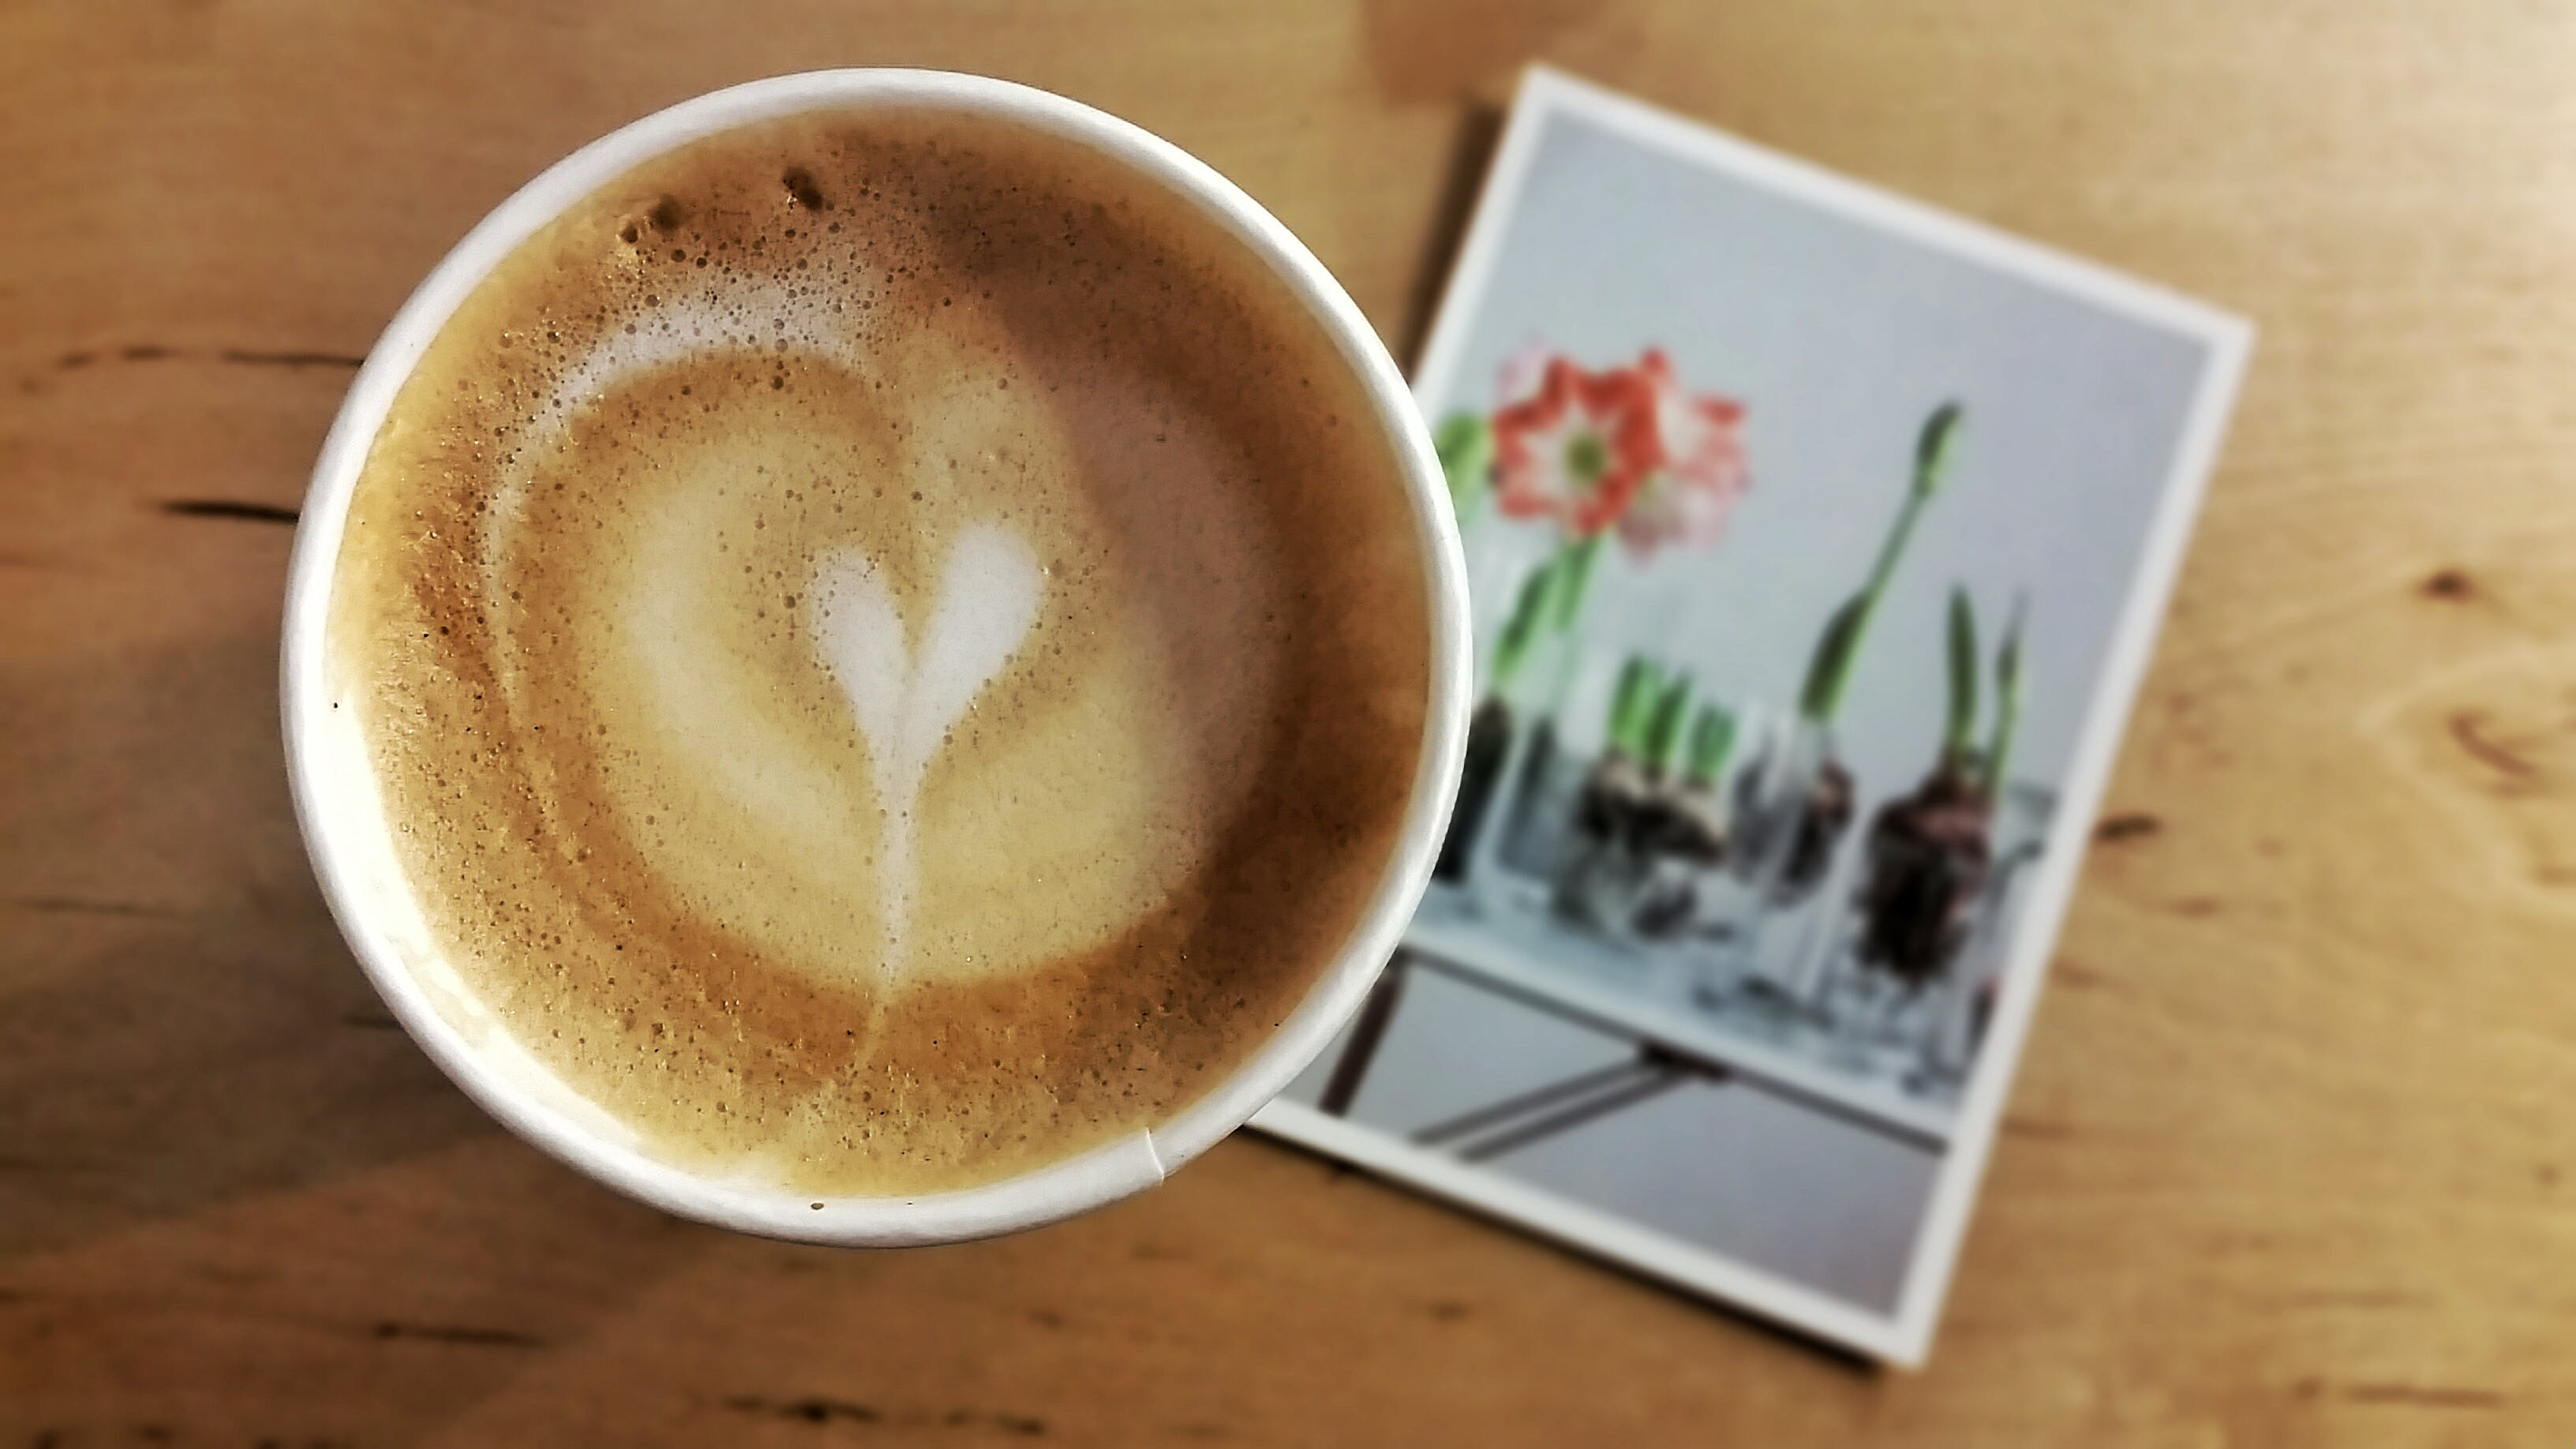 Espresso on White Ceramic Cup on Red Flower Photograph